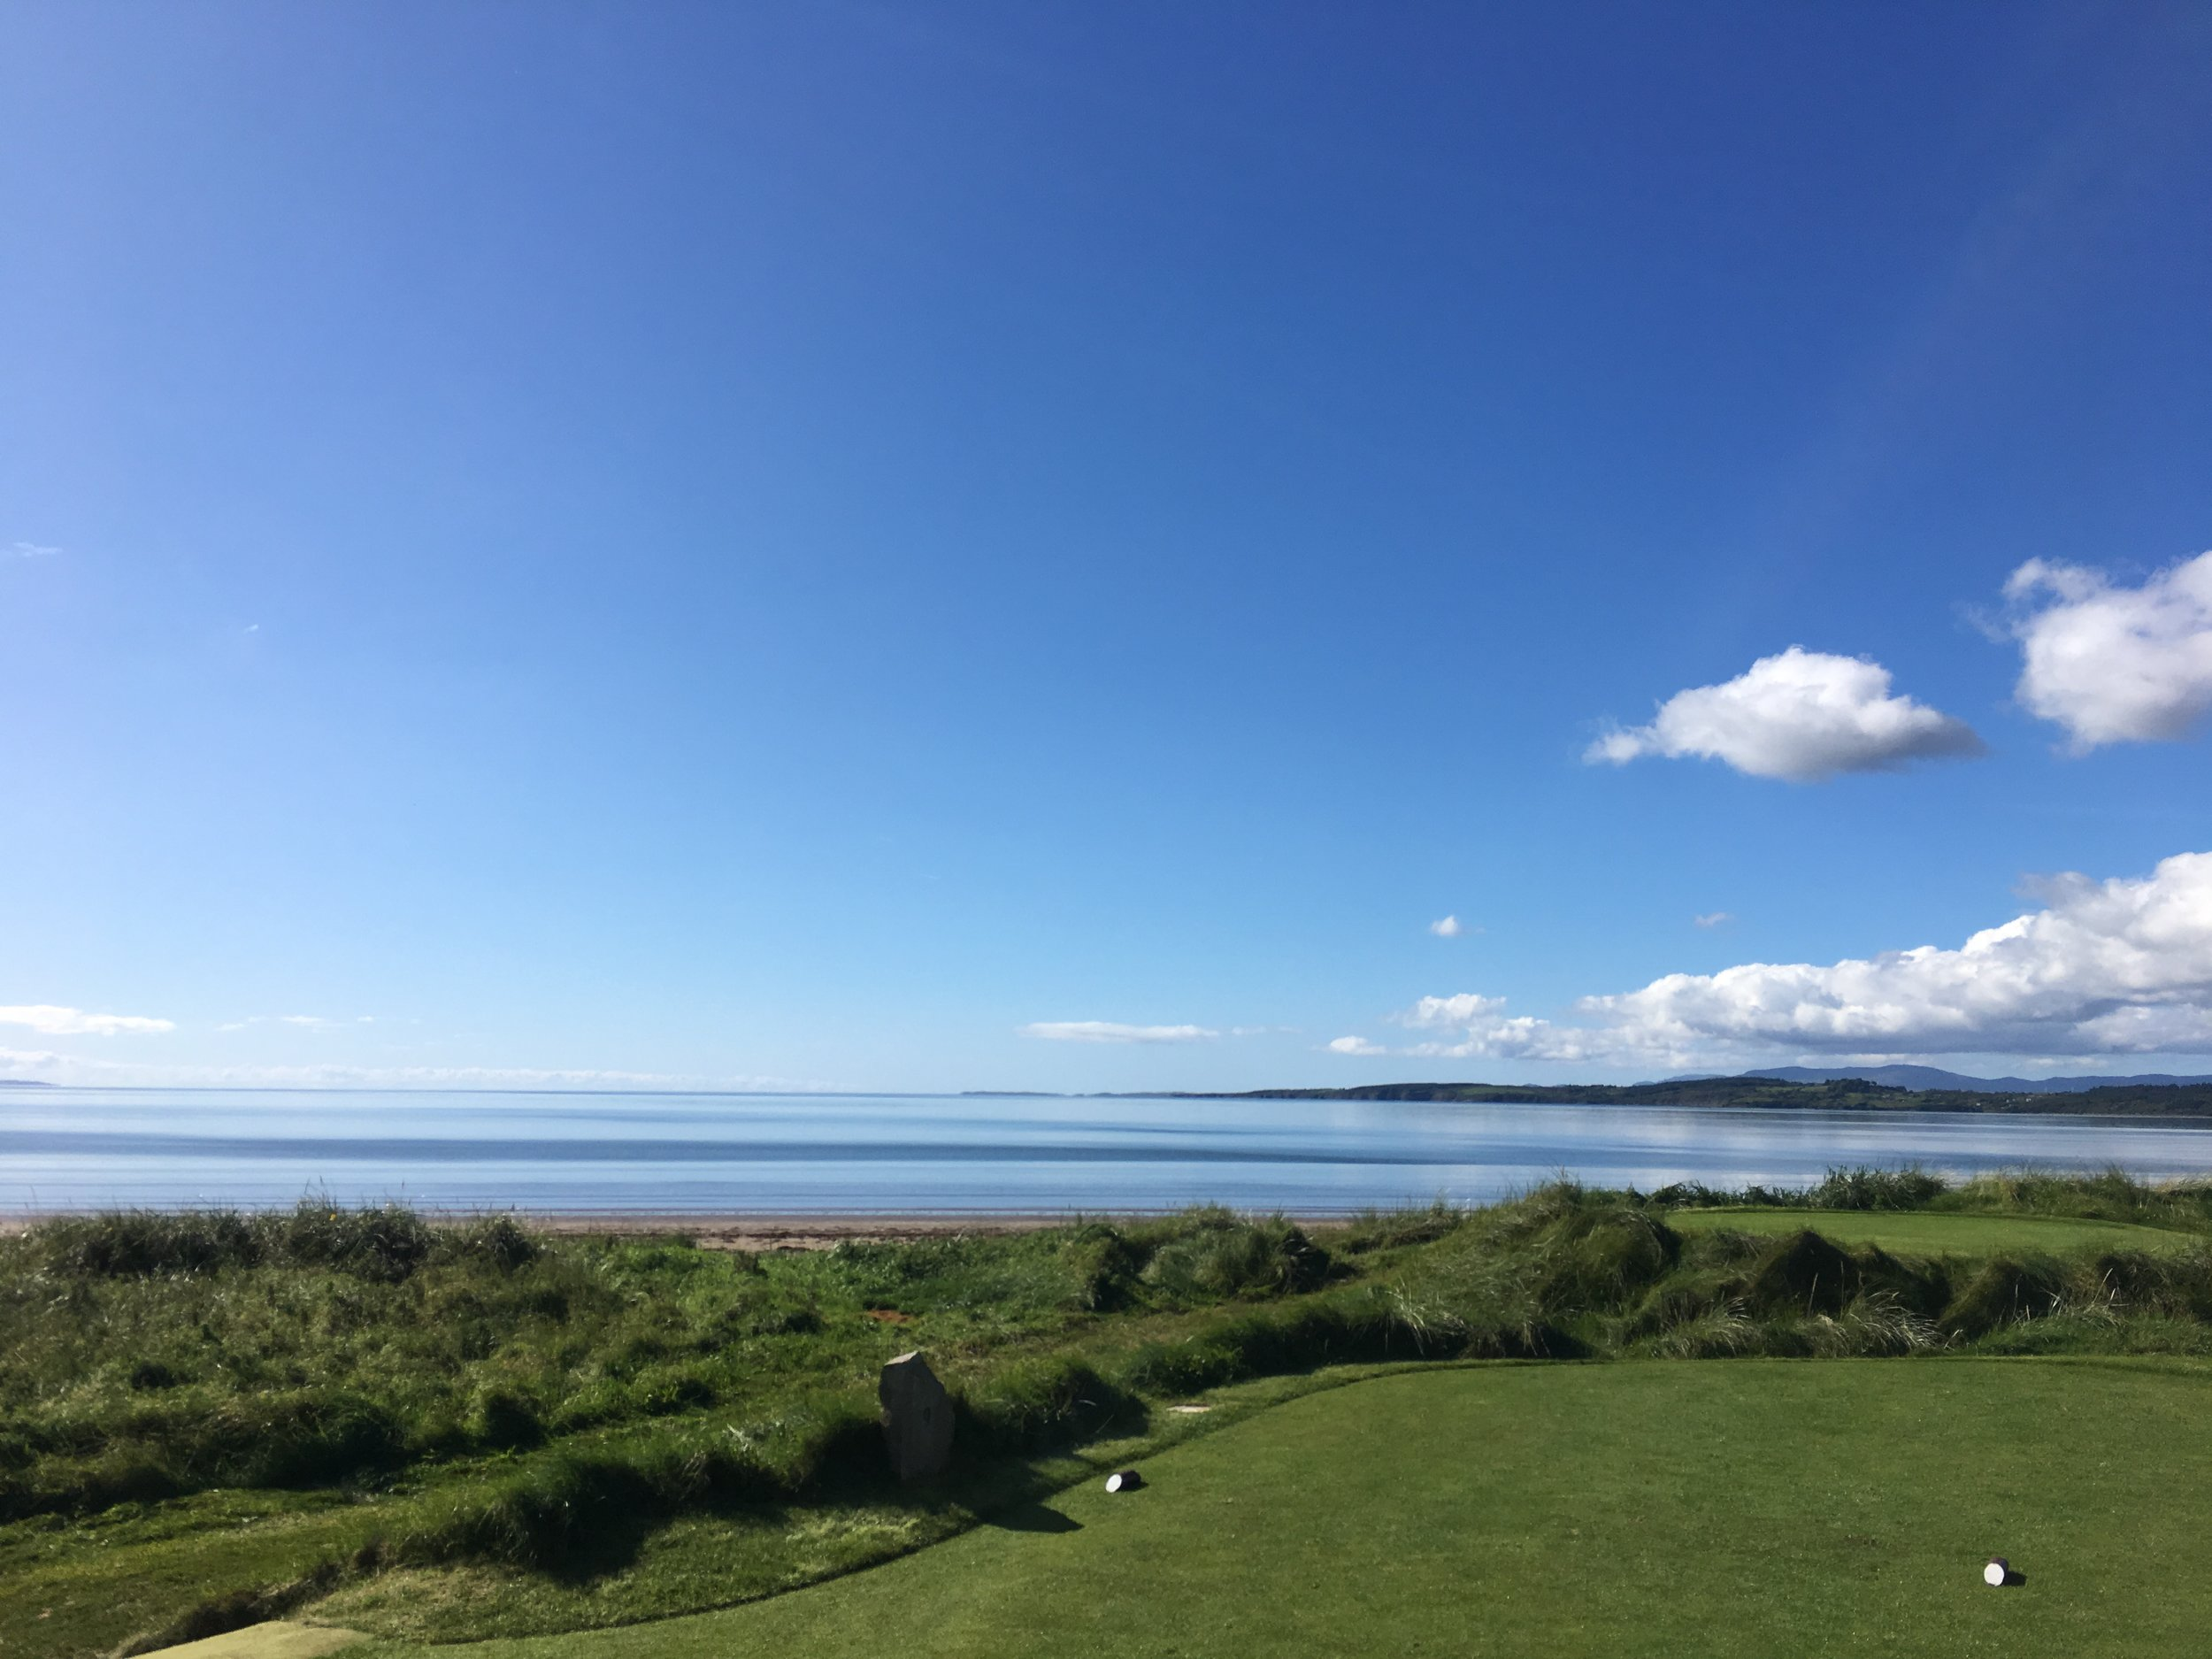 Golf Courses ... - The golf courses of the world are our office. We provide evocative descriptions as to why you should go out and play golf on the magnificent courses of the world.